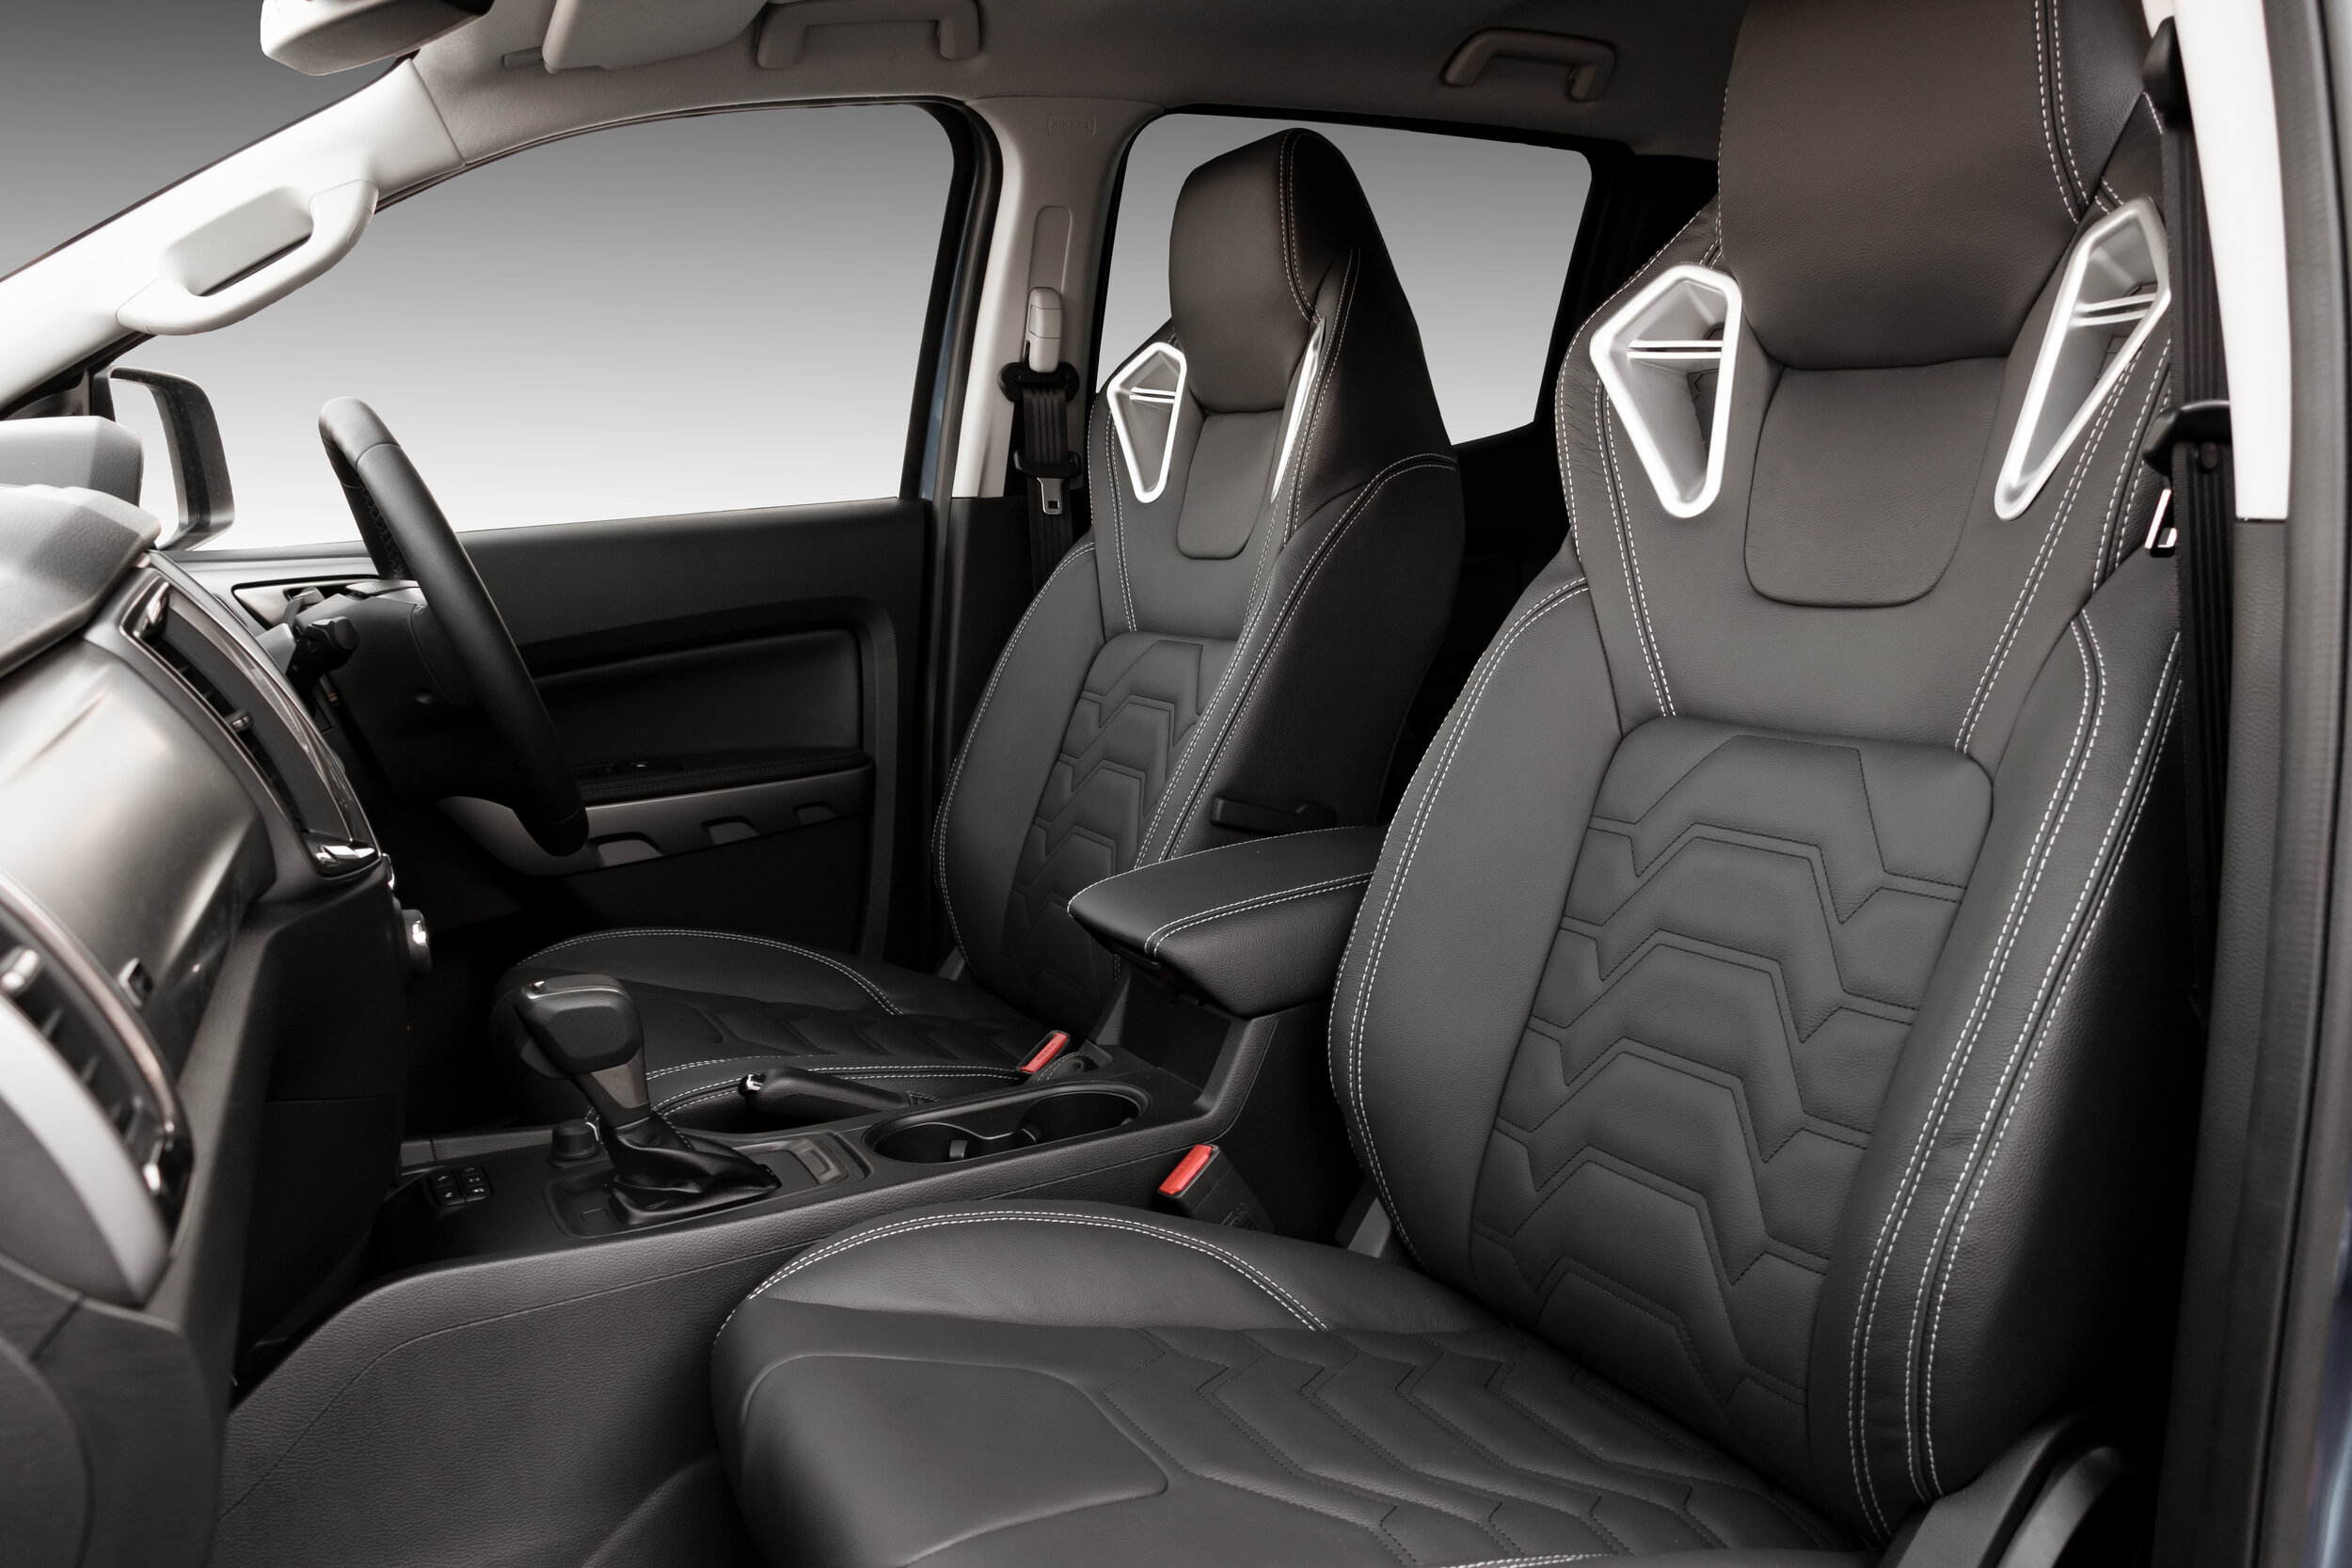 SLIDER.IMAGE.RVE-Sport-Leather-Upgrade-Monza-Design-Armour-Inserts-Ford-Ranger-Front-Row-Upgrade-1 - Copy.jpg